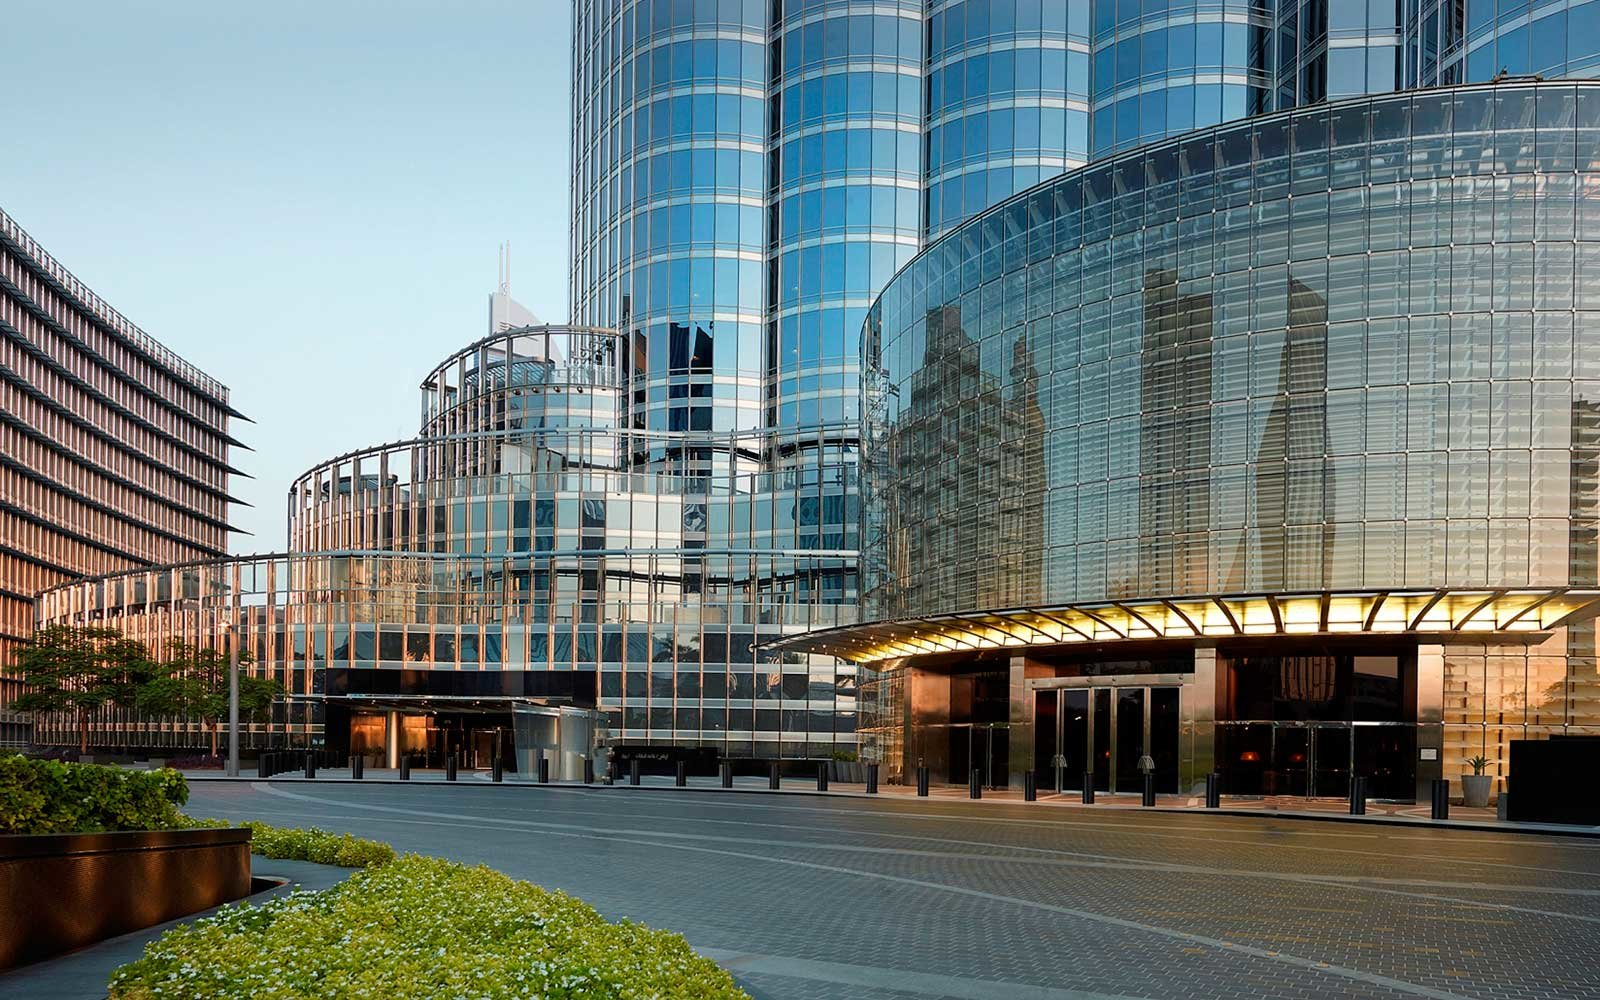 Armani Hotel Dubai in North Africa and Middle East